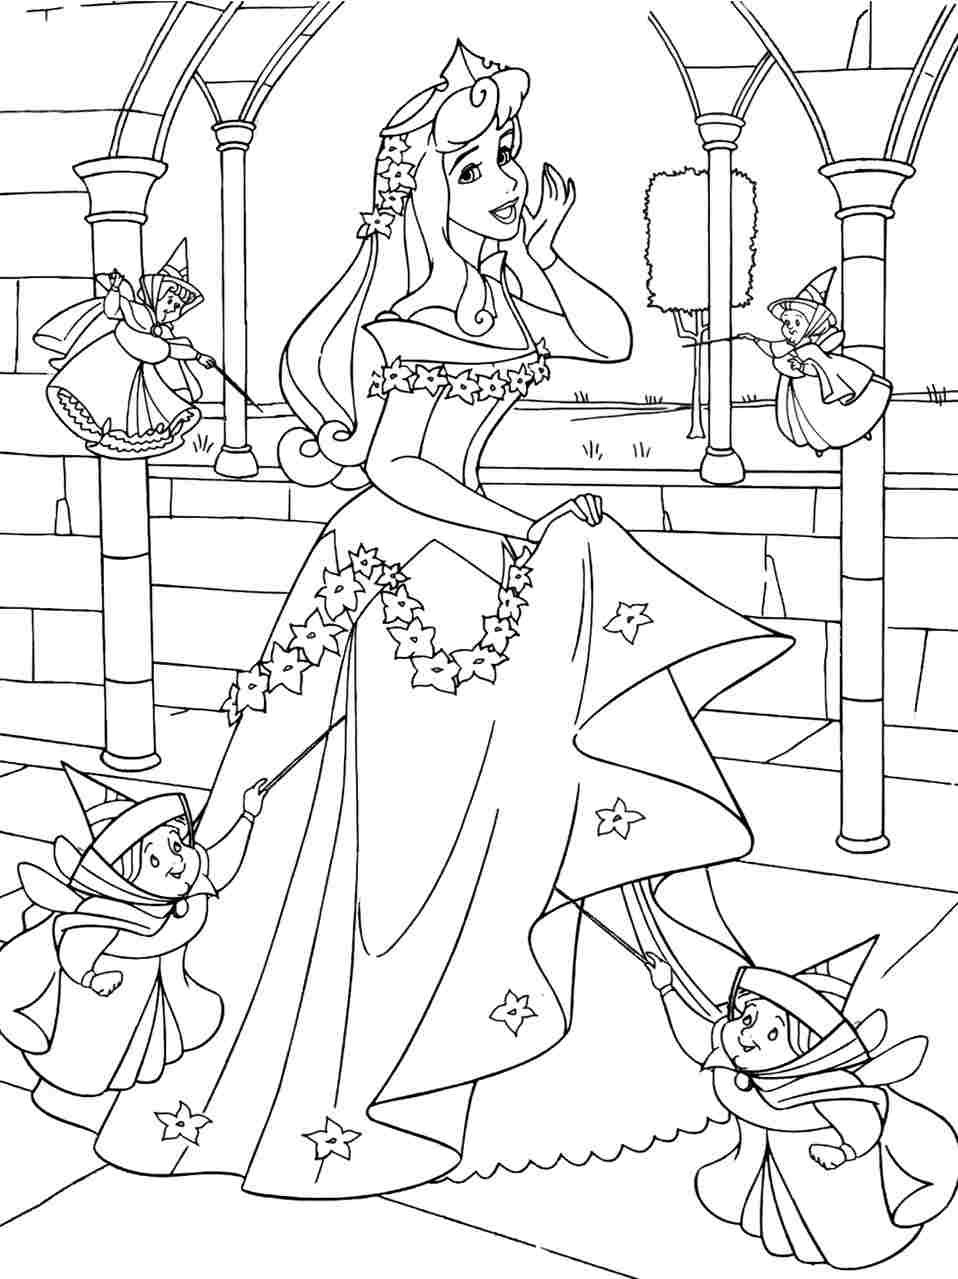 958x1279 Sleeping Beauty Coloring Pages Print Disney Princess Sleeping